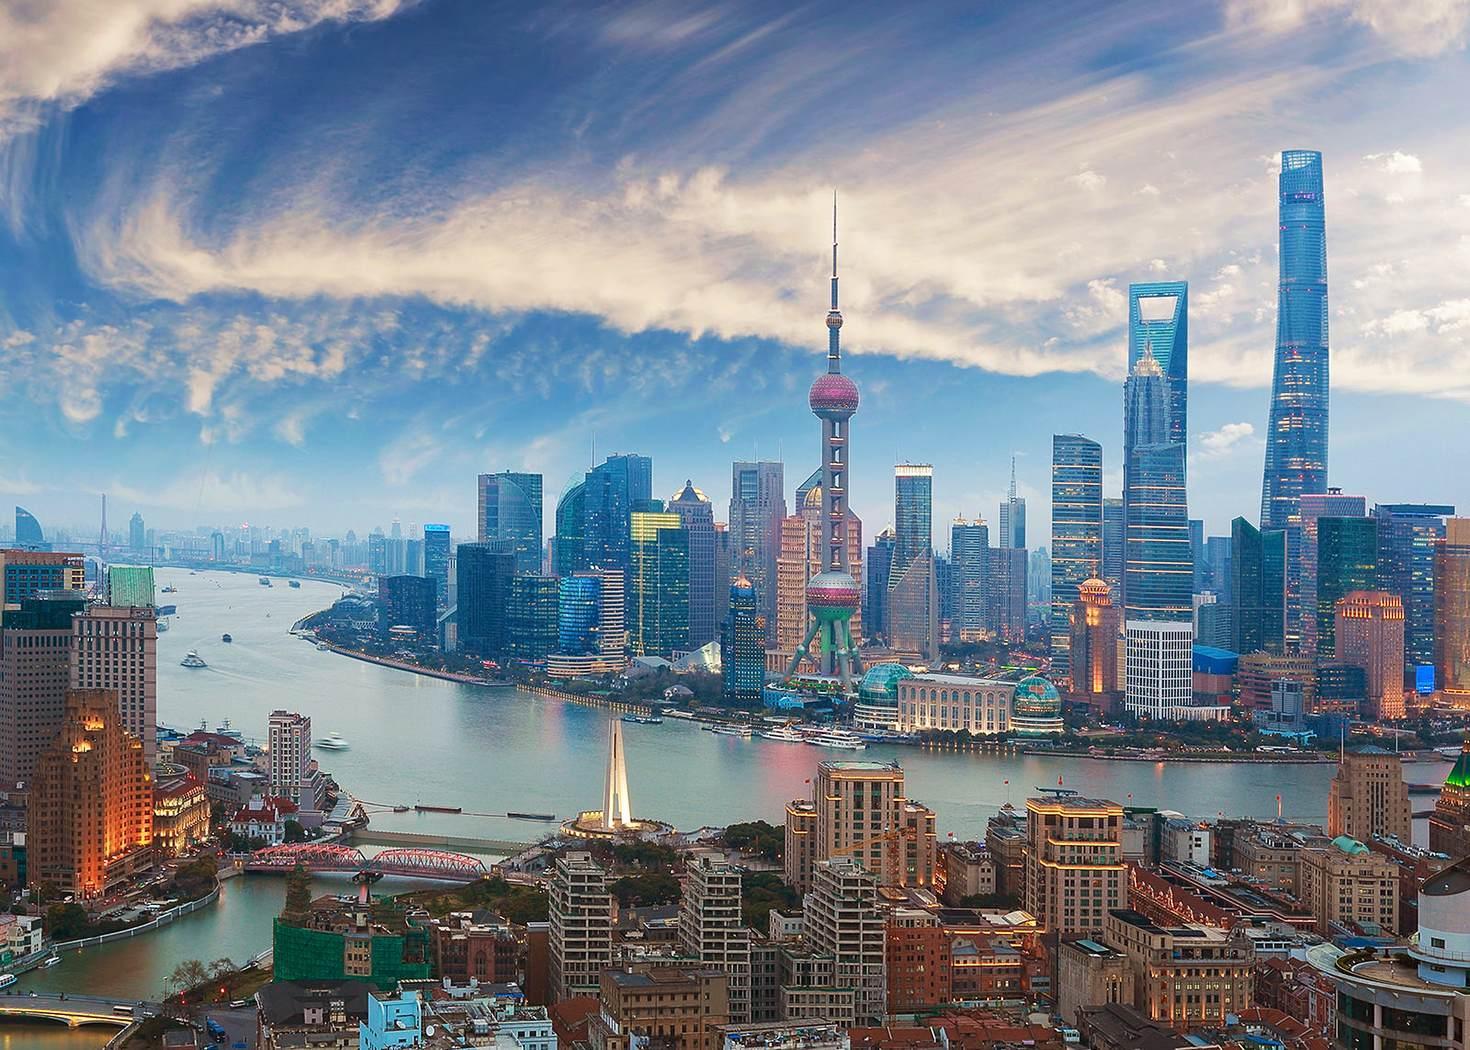 Get a bird's eye view of the new Shanghai skyline © 123ArtistImages / Getty Images